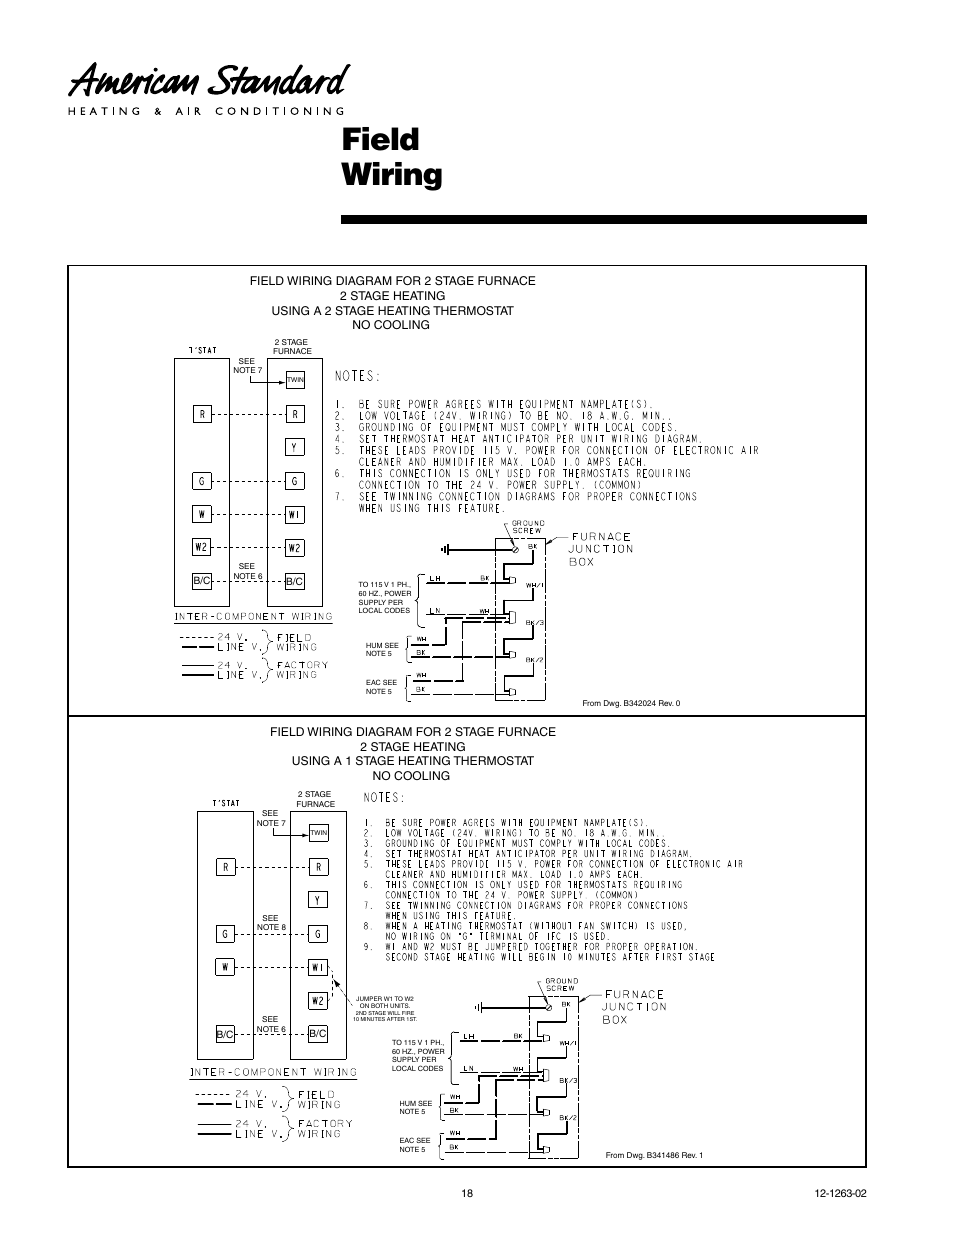 american standard freedom 80 page18 field wiring american standard freedom 80 user manual page 18 24 2-stage furnace thermostat wiring diagram at bayanpartner.co